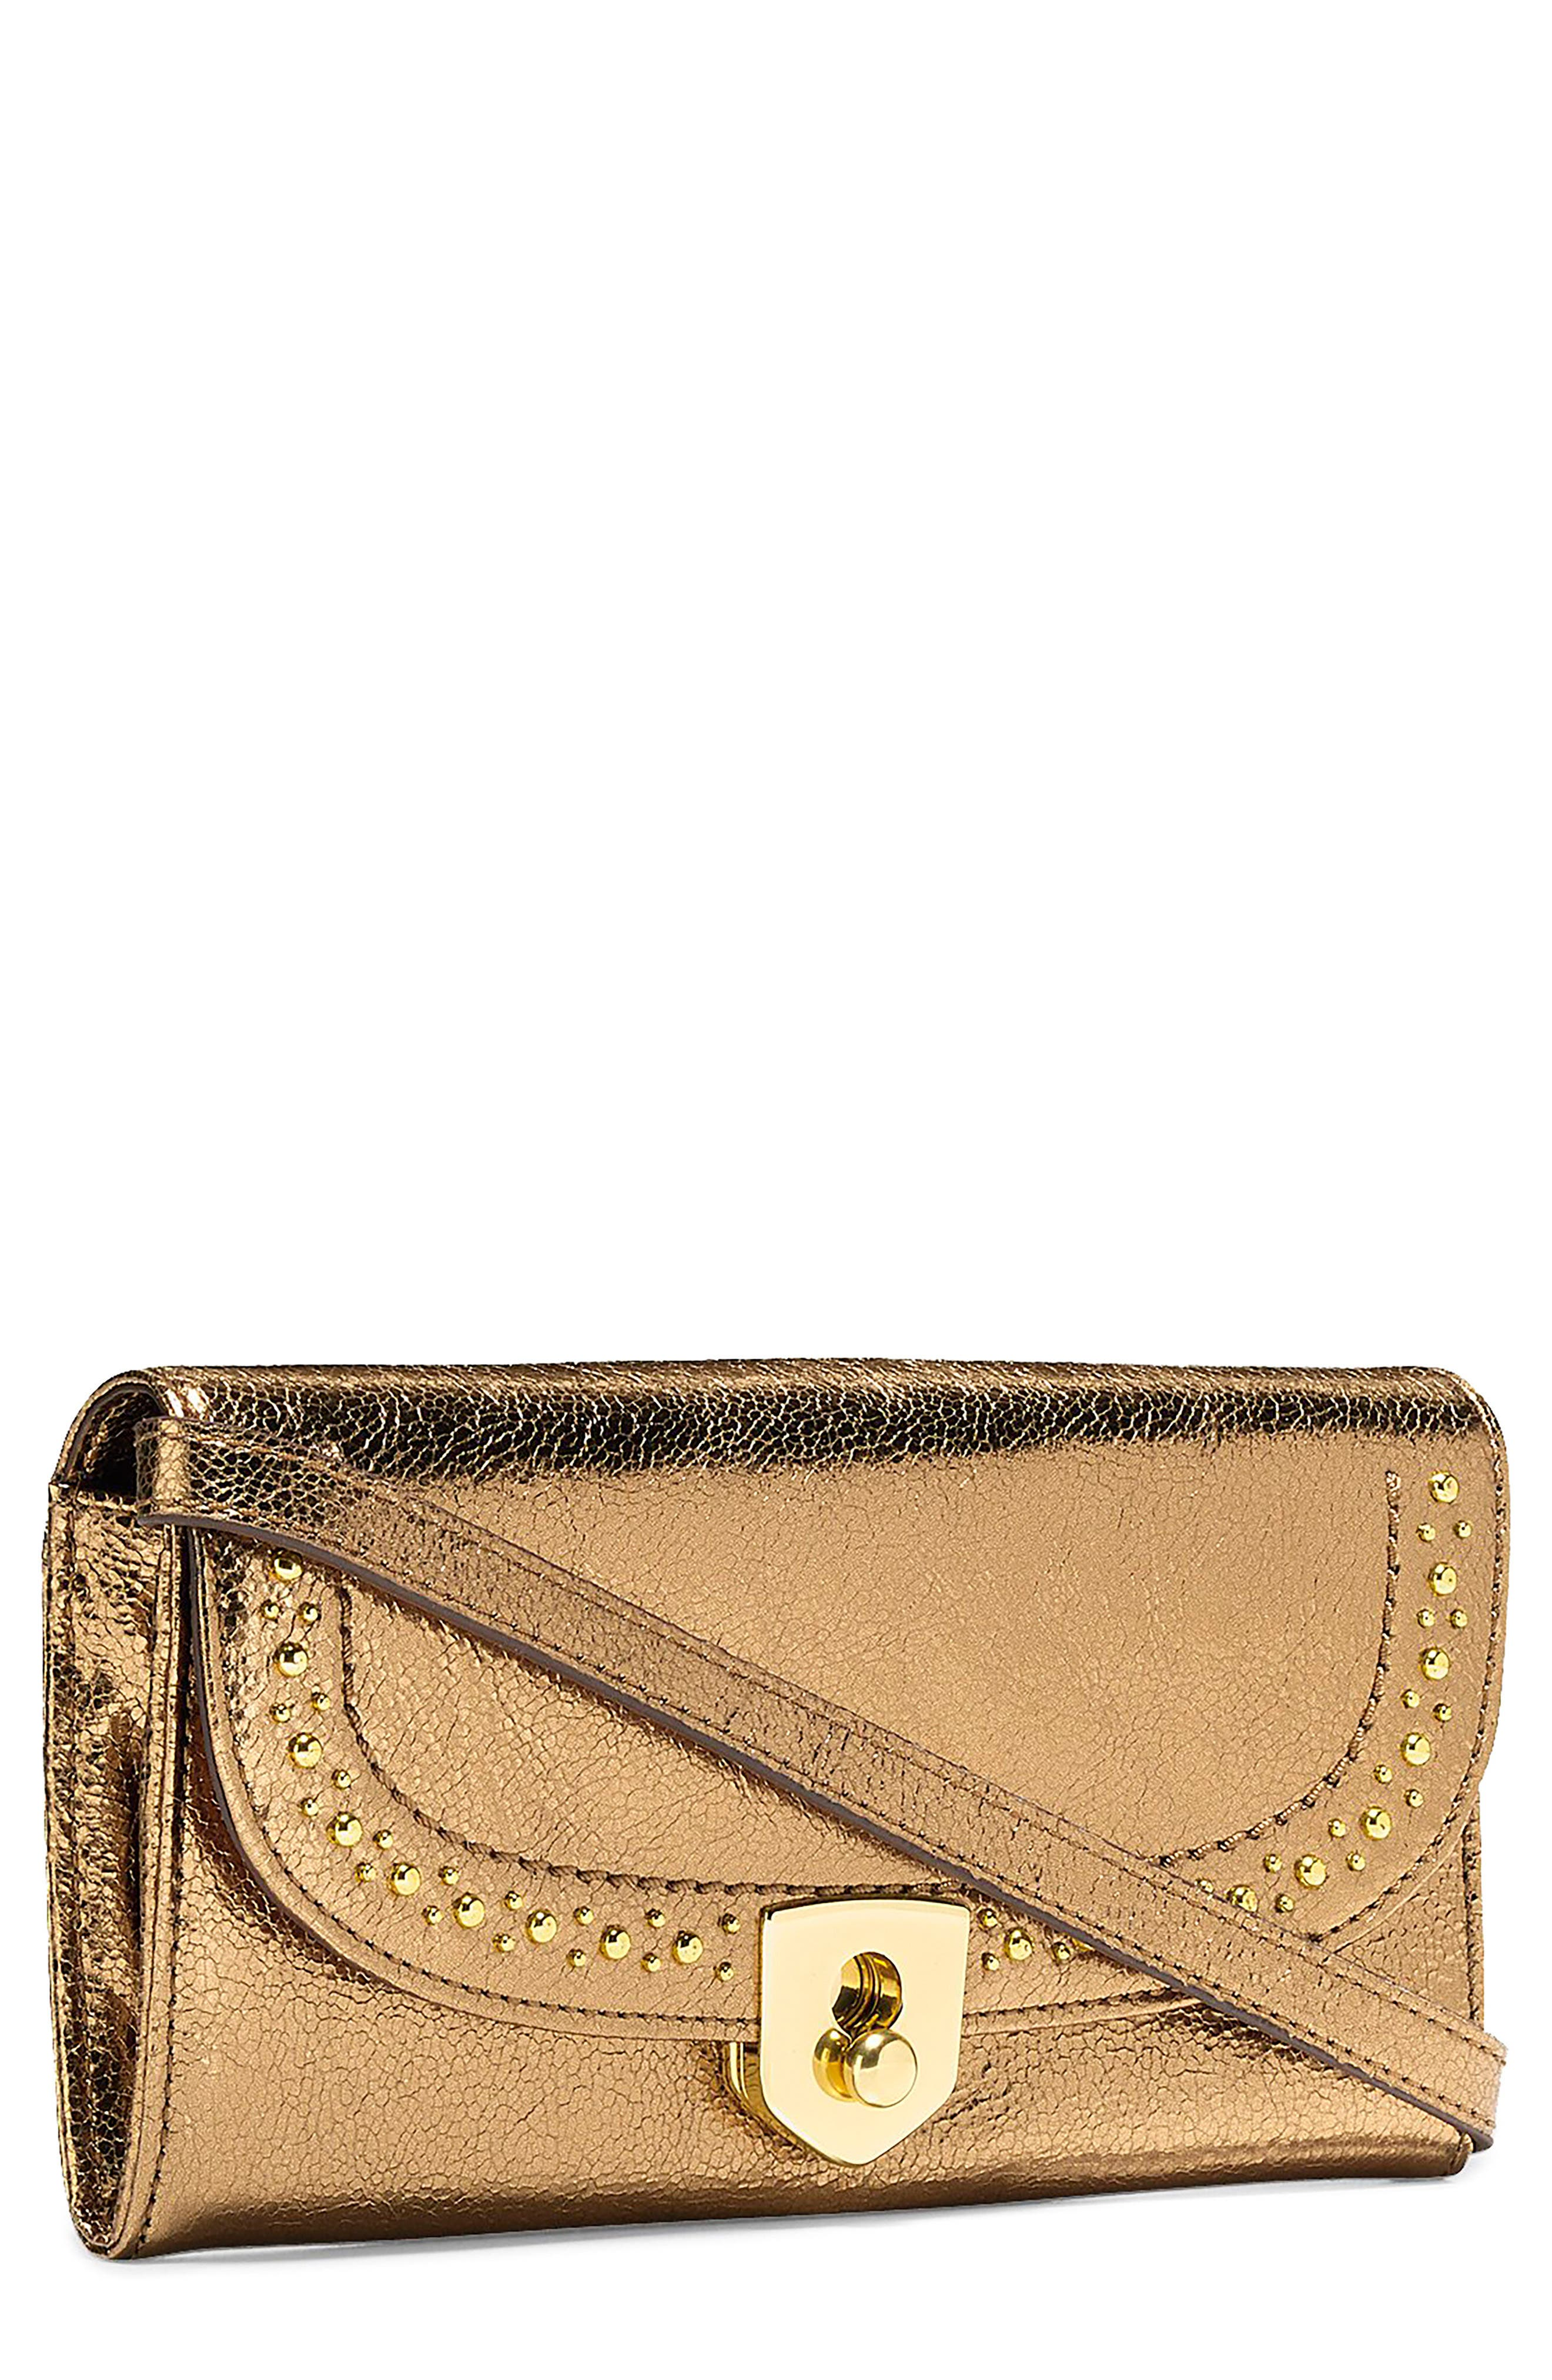 Marli Studded Metallic Leather Convertible Smartphone Clutch,                             Main thumbnail 2, color,